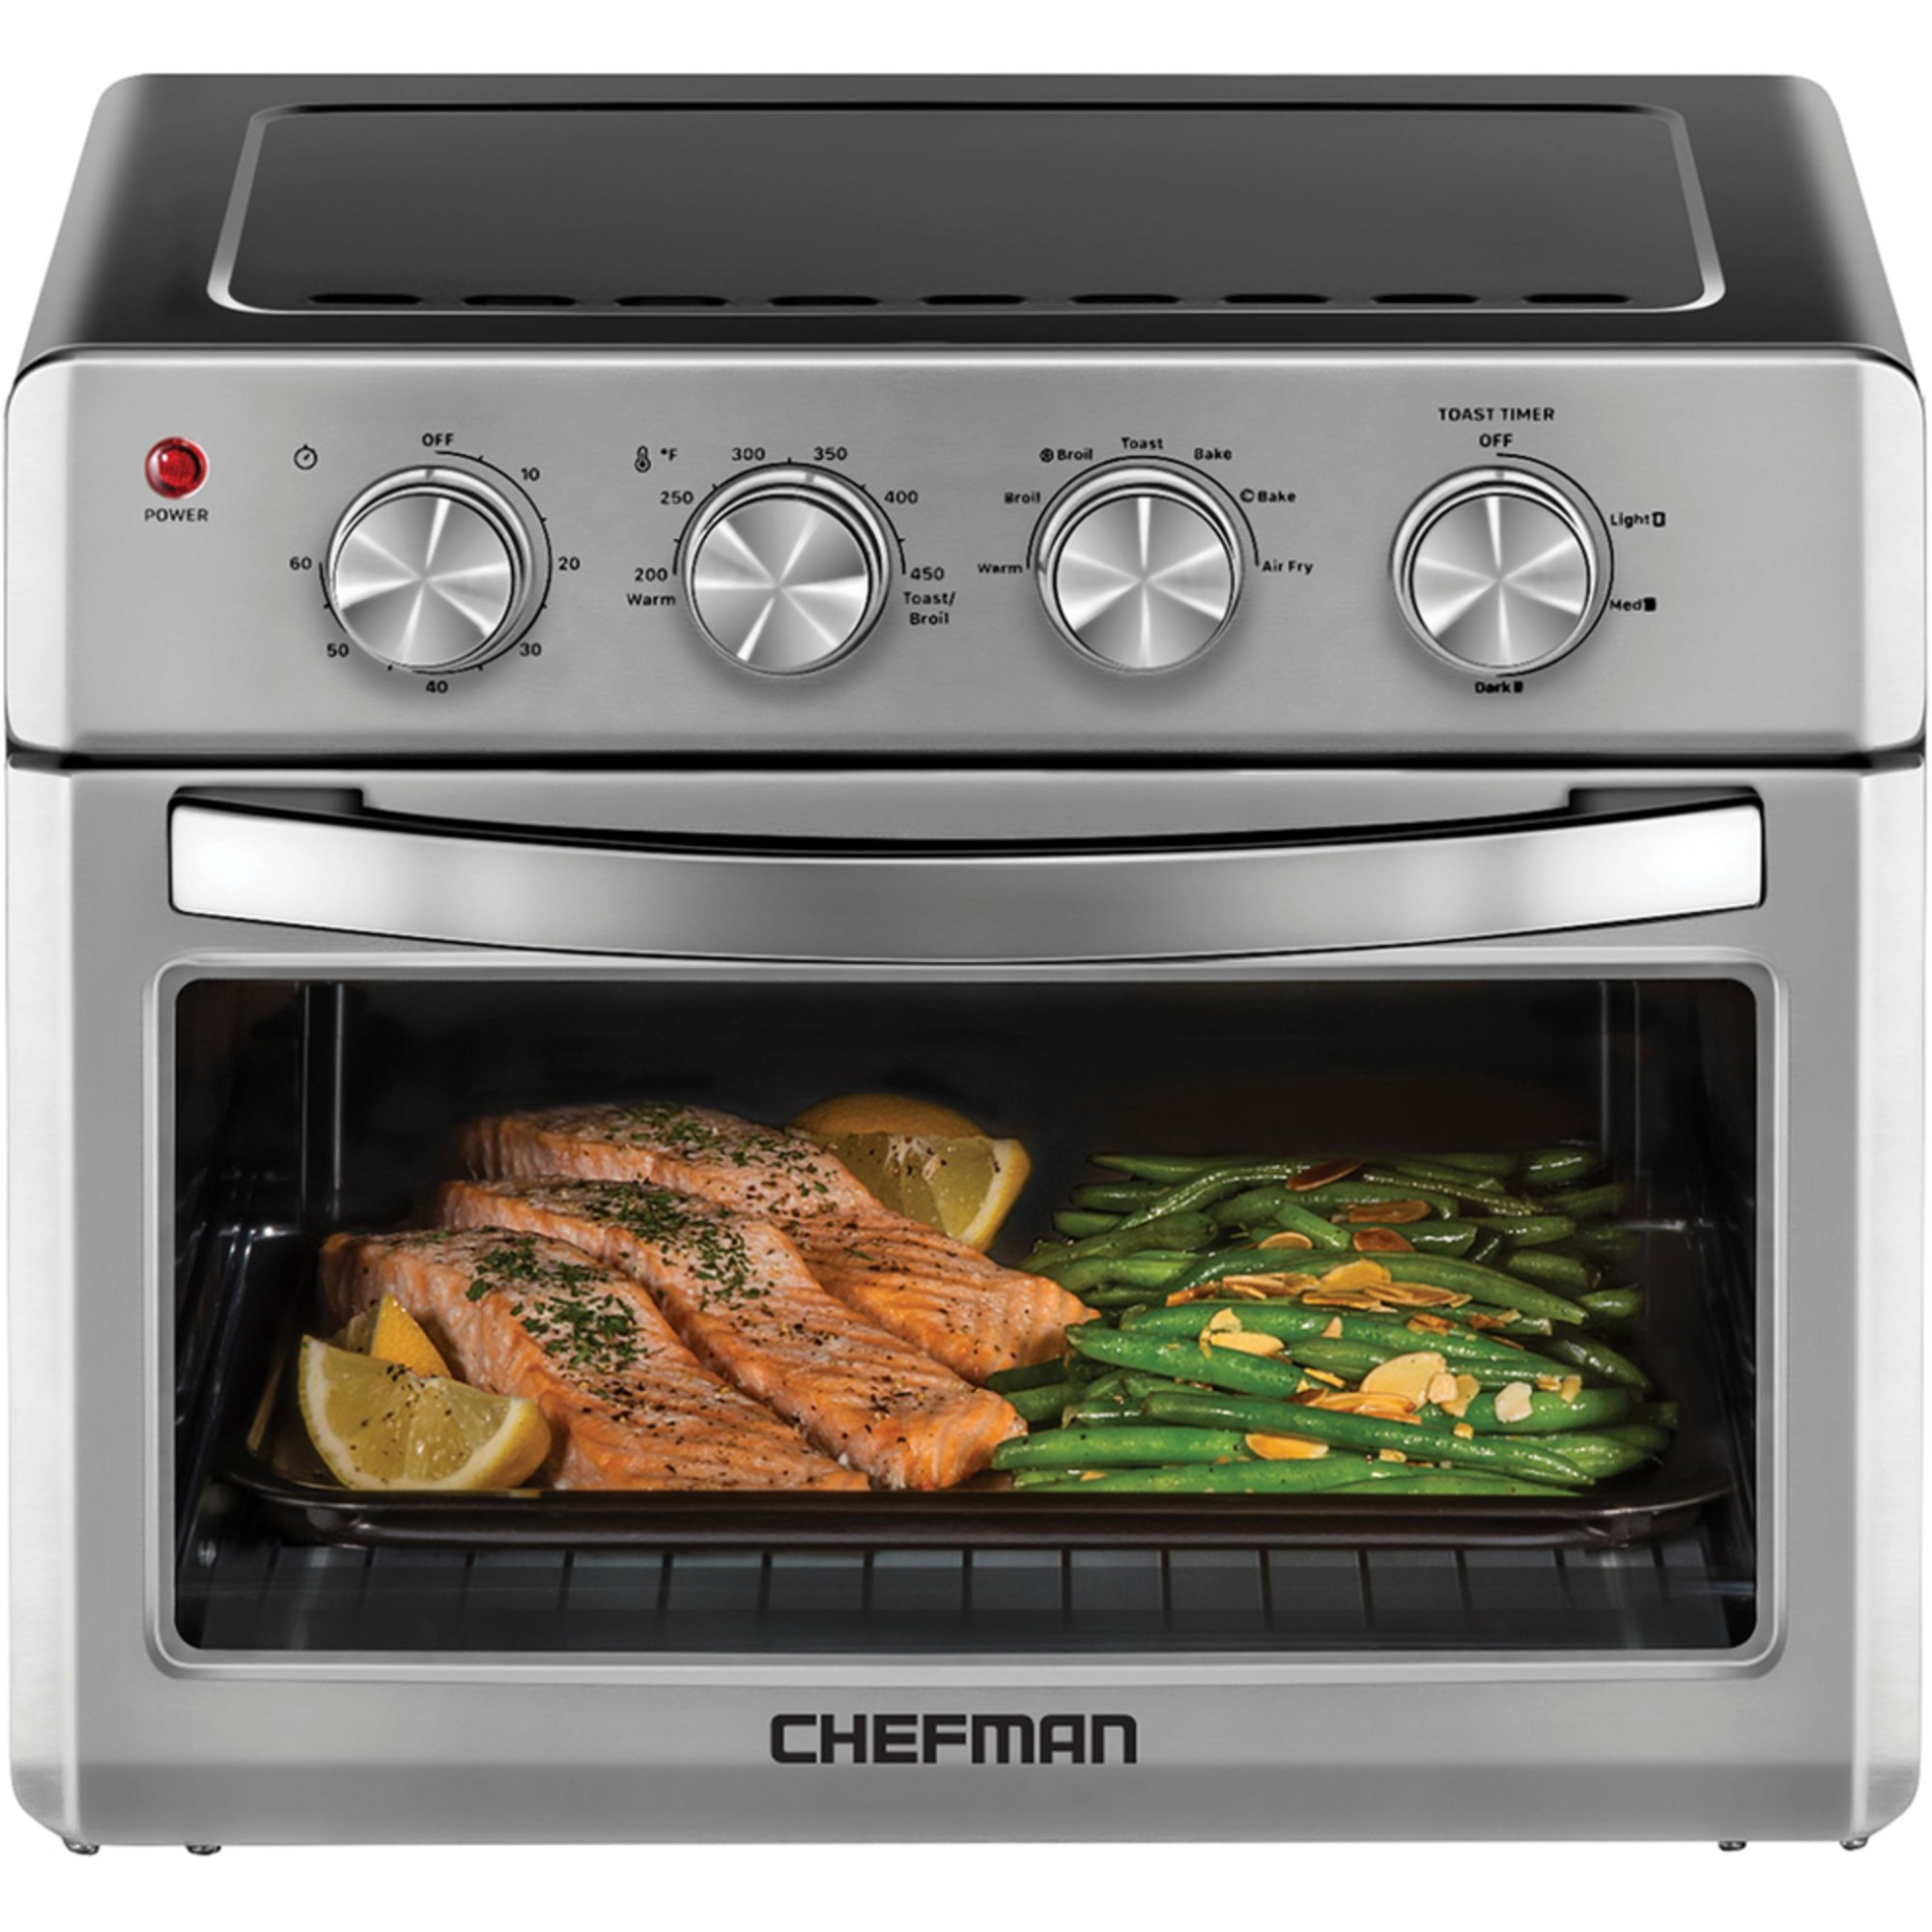 Chefman Toaster Oven Air Fryer Fryers For The Home Shop Your Navy Exchange Official Site